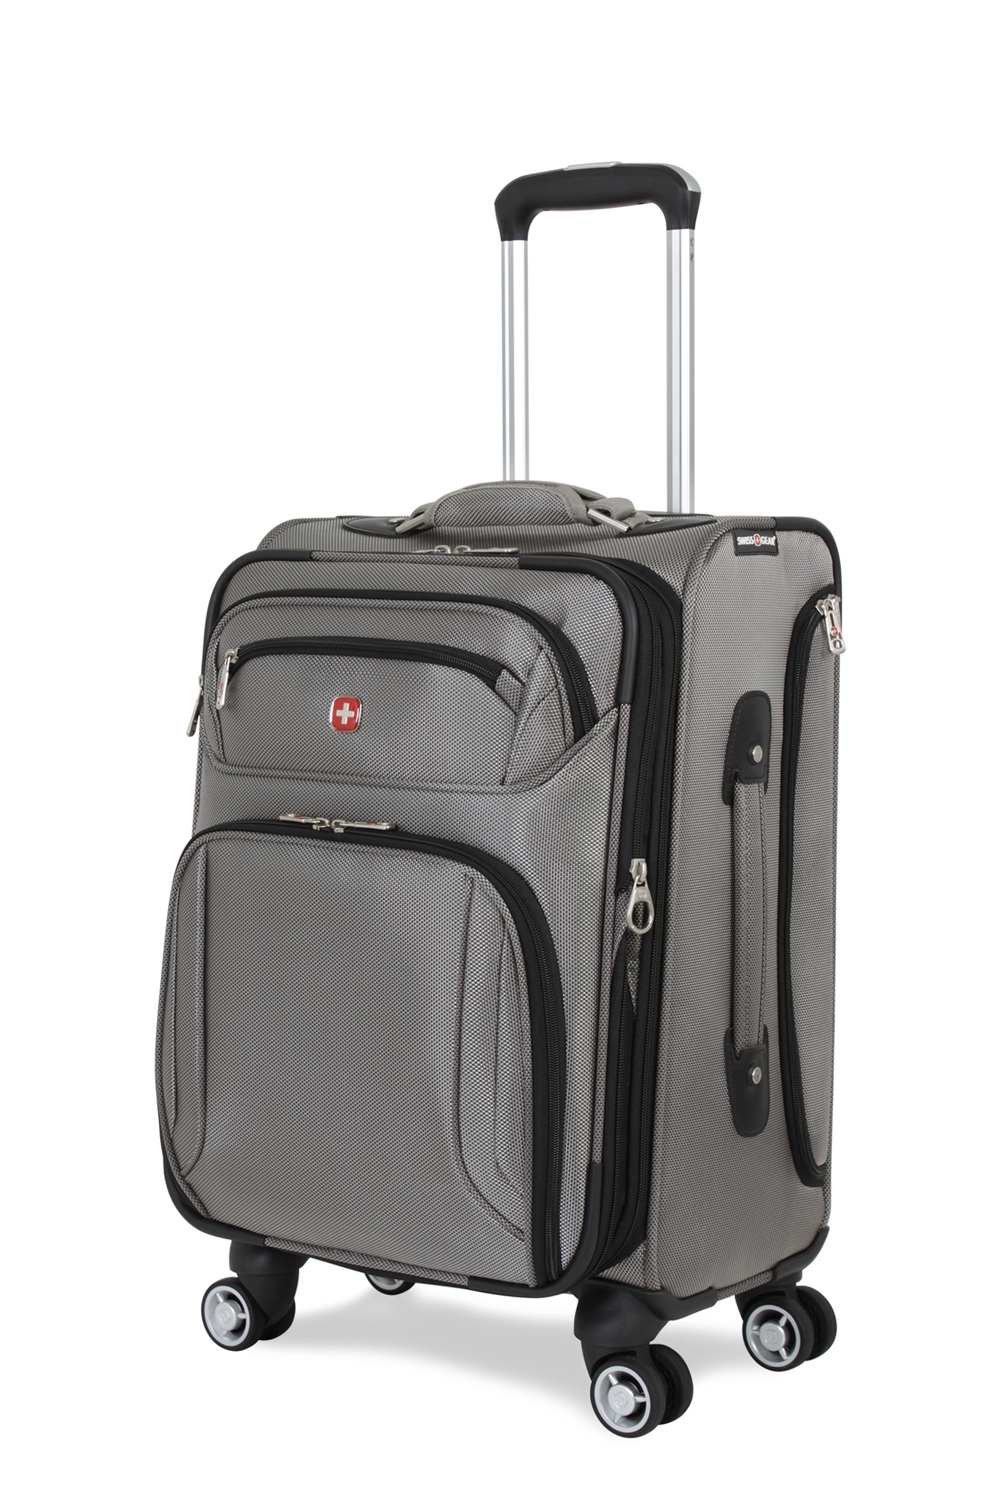 Swissgear 7895 19 Zurich Expandable Deluxe Carry On Spinner Luggage Pewter